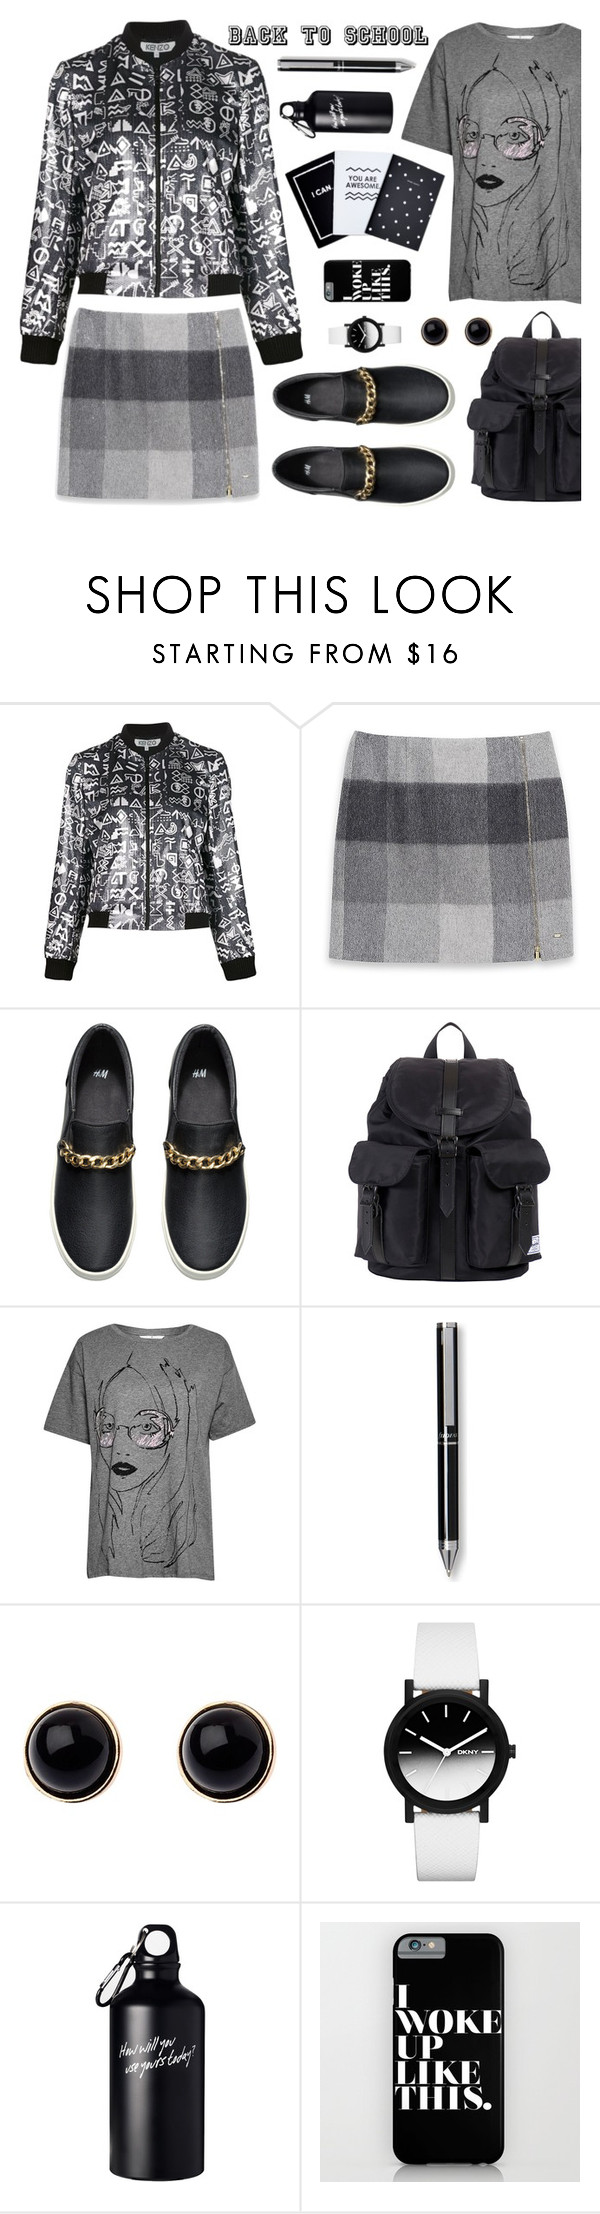 """""""Back To School Outfit"""" by nans-g ❤ liked on Polyvore featuring Kenzo, Tommy Hilfiger, H&M, Herschel Supply Co., French Connection, FiloFax, Adele Marie and DKNY"""